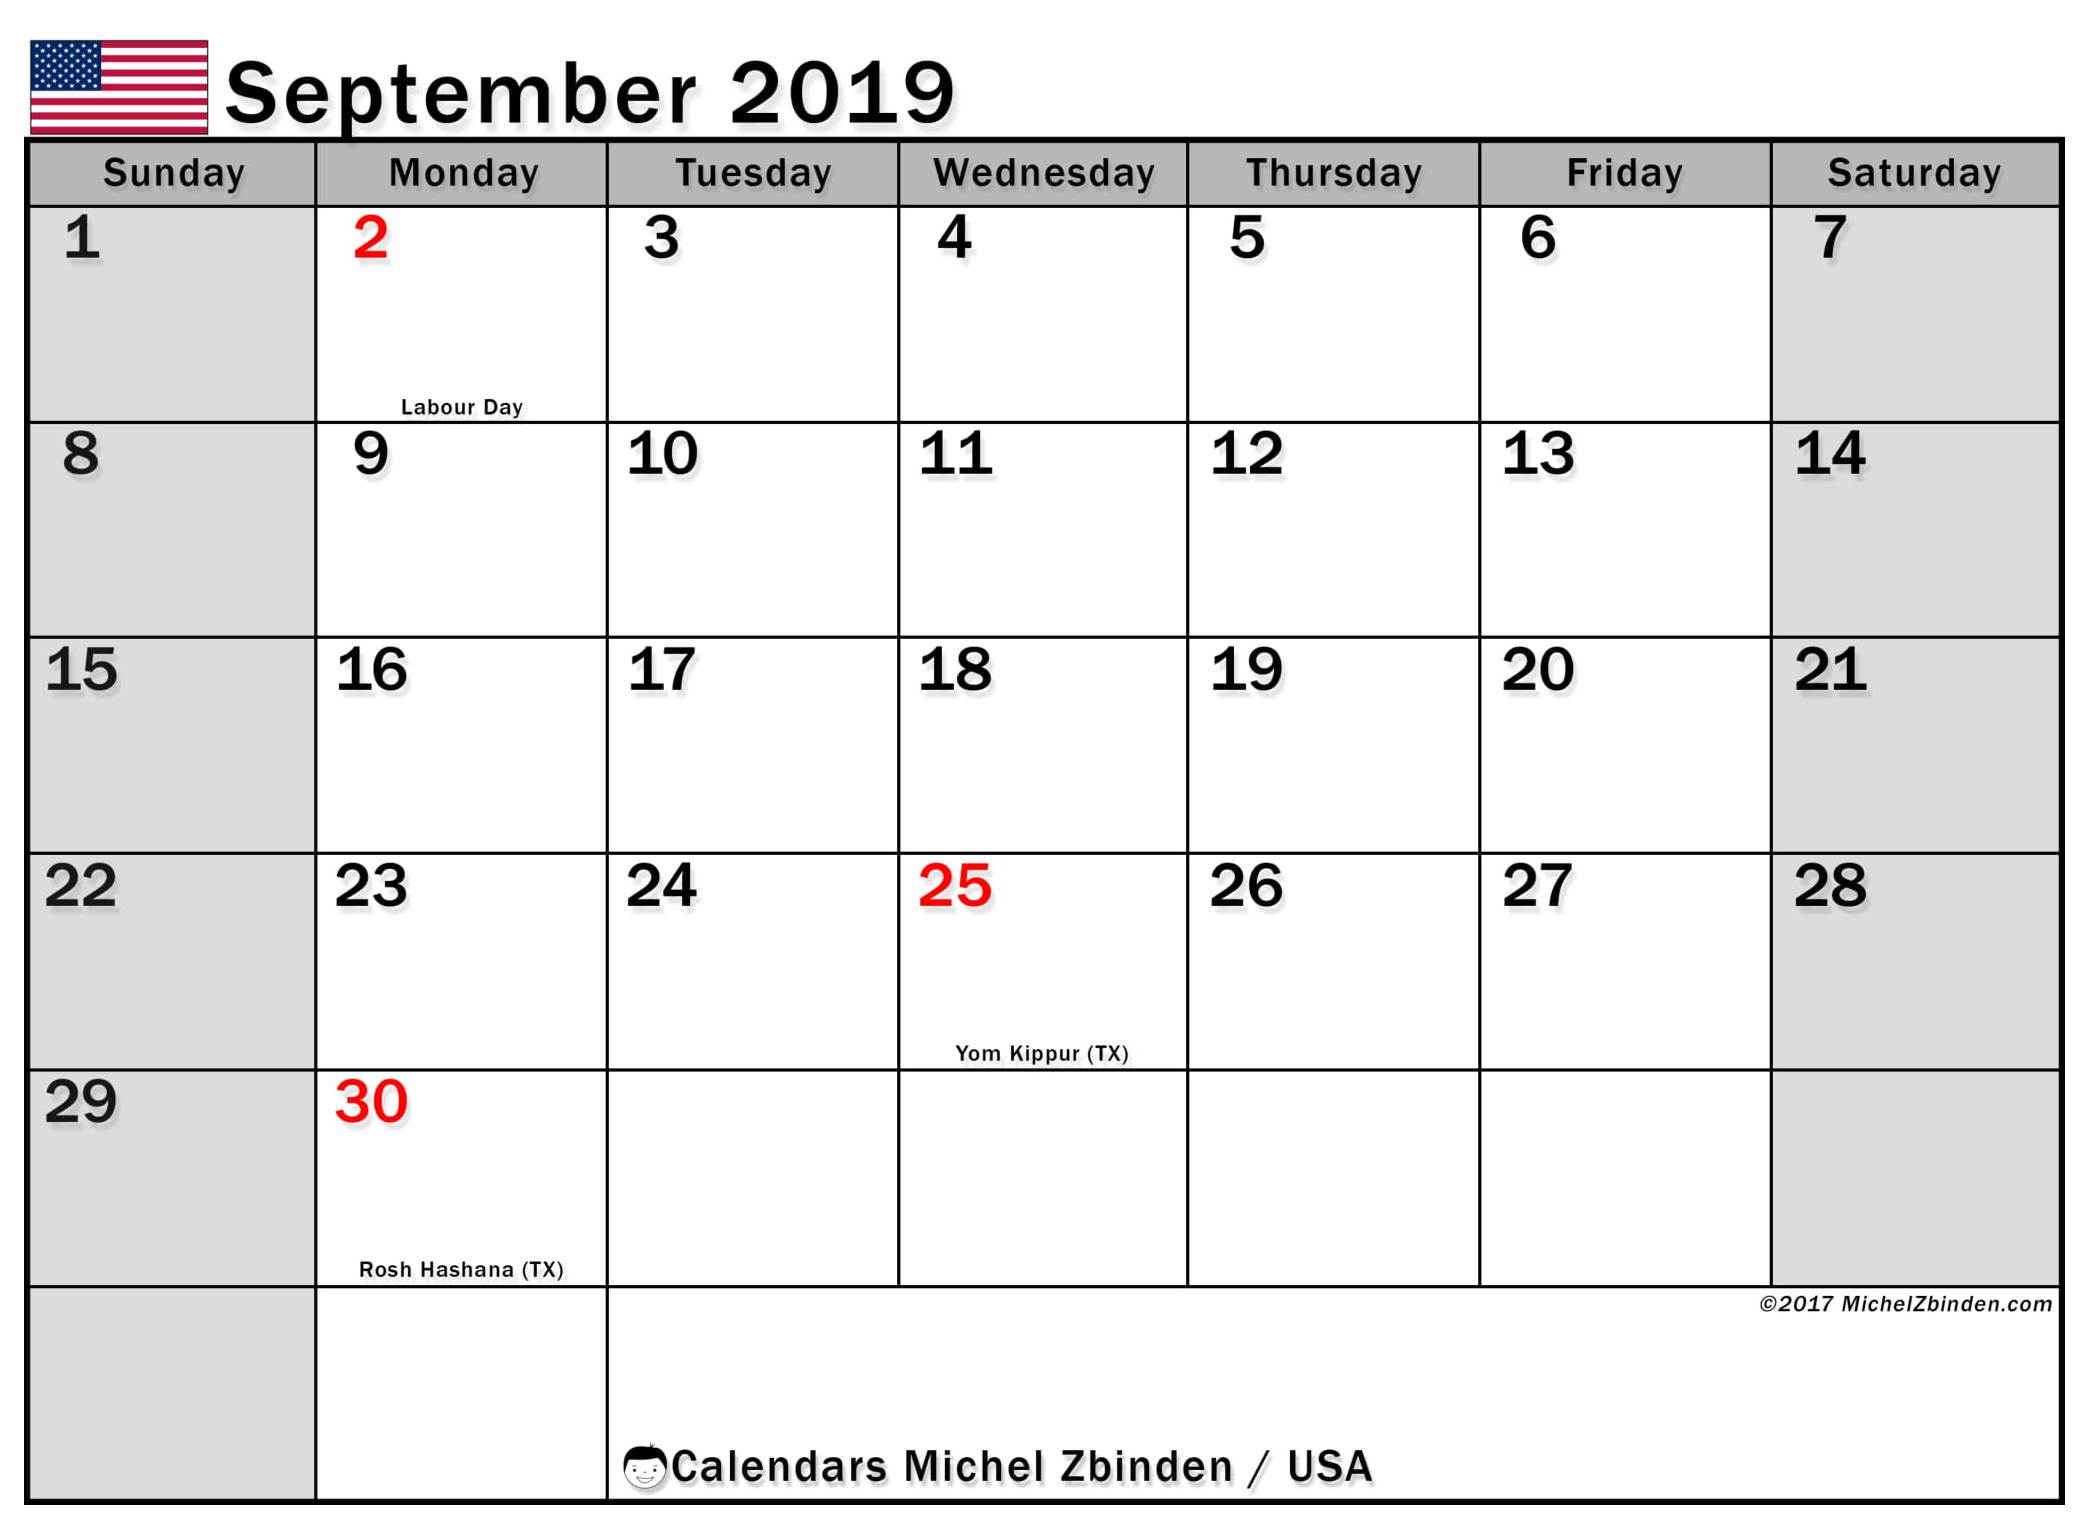 September 2019 Calendar USA Flag